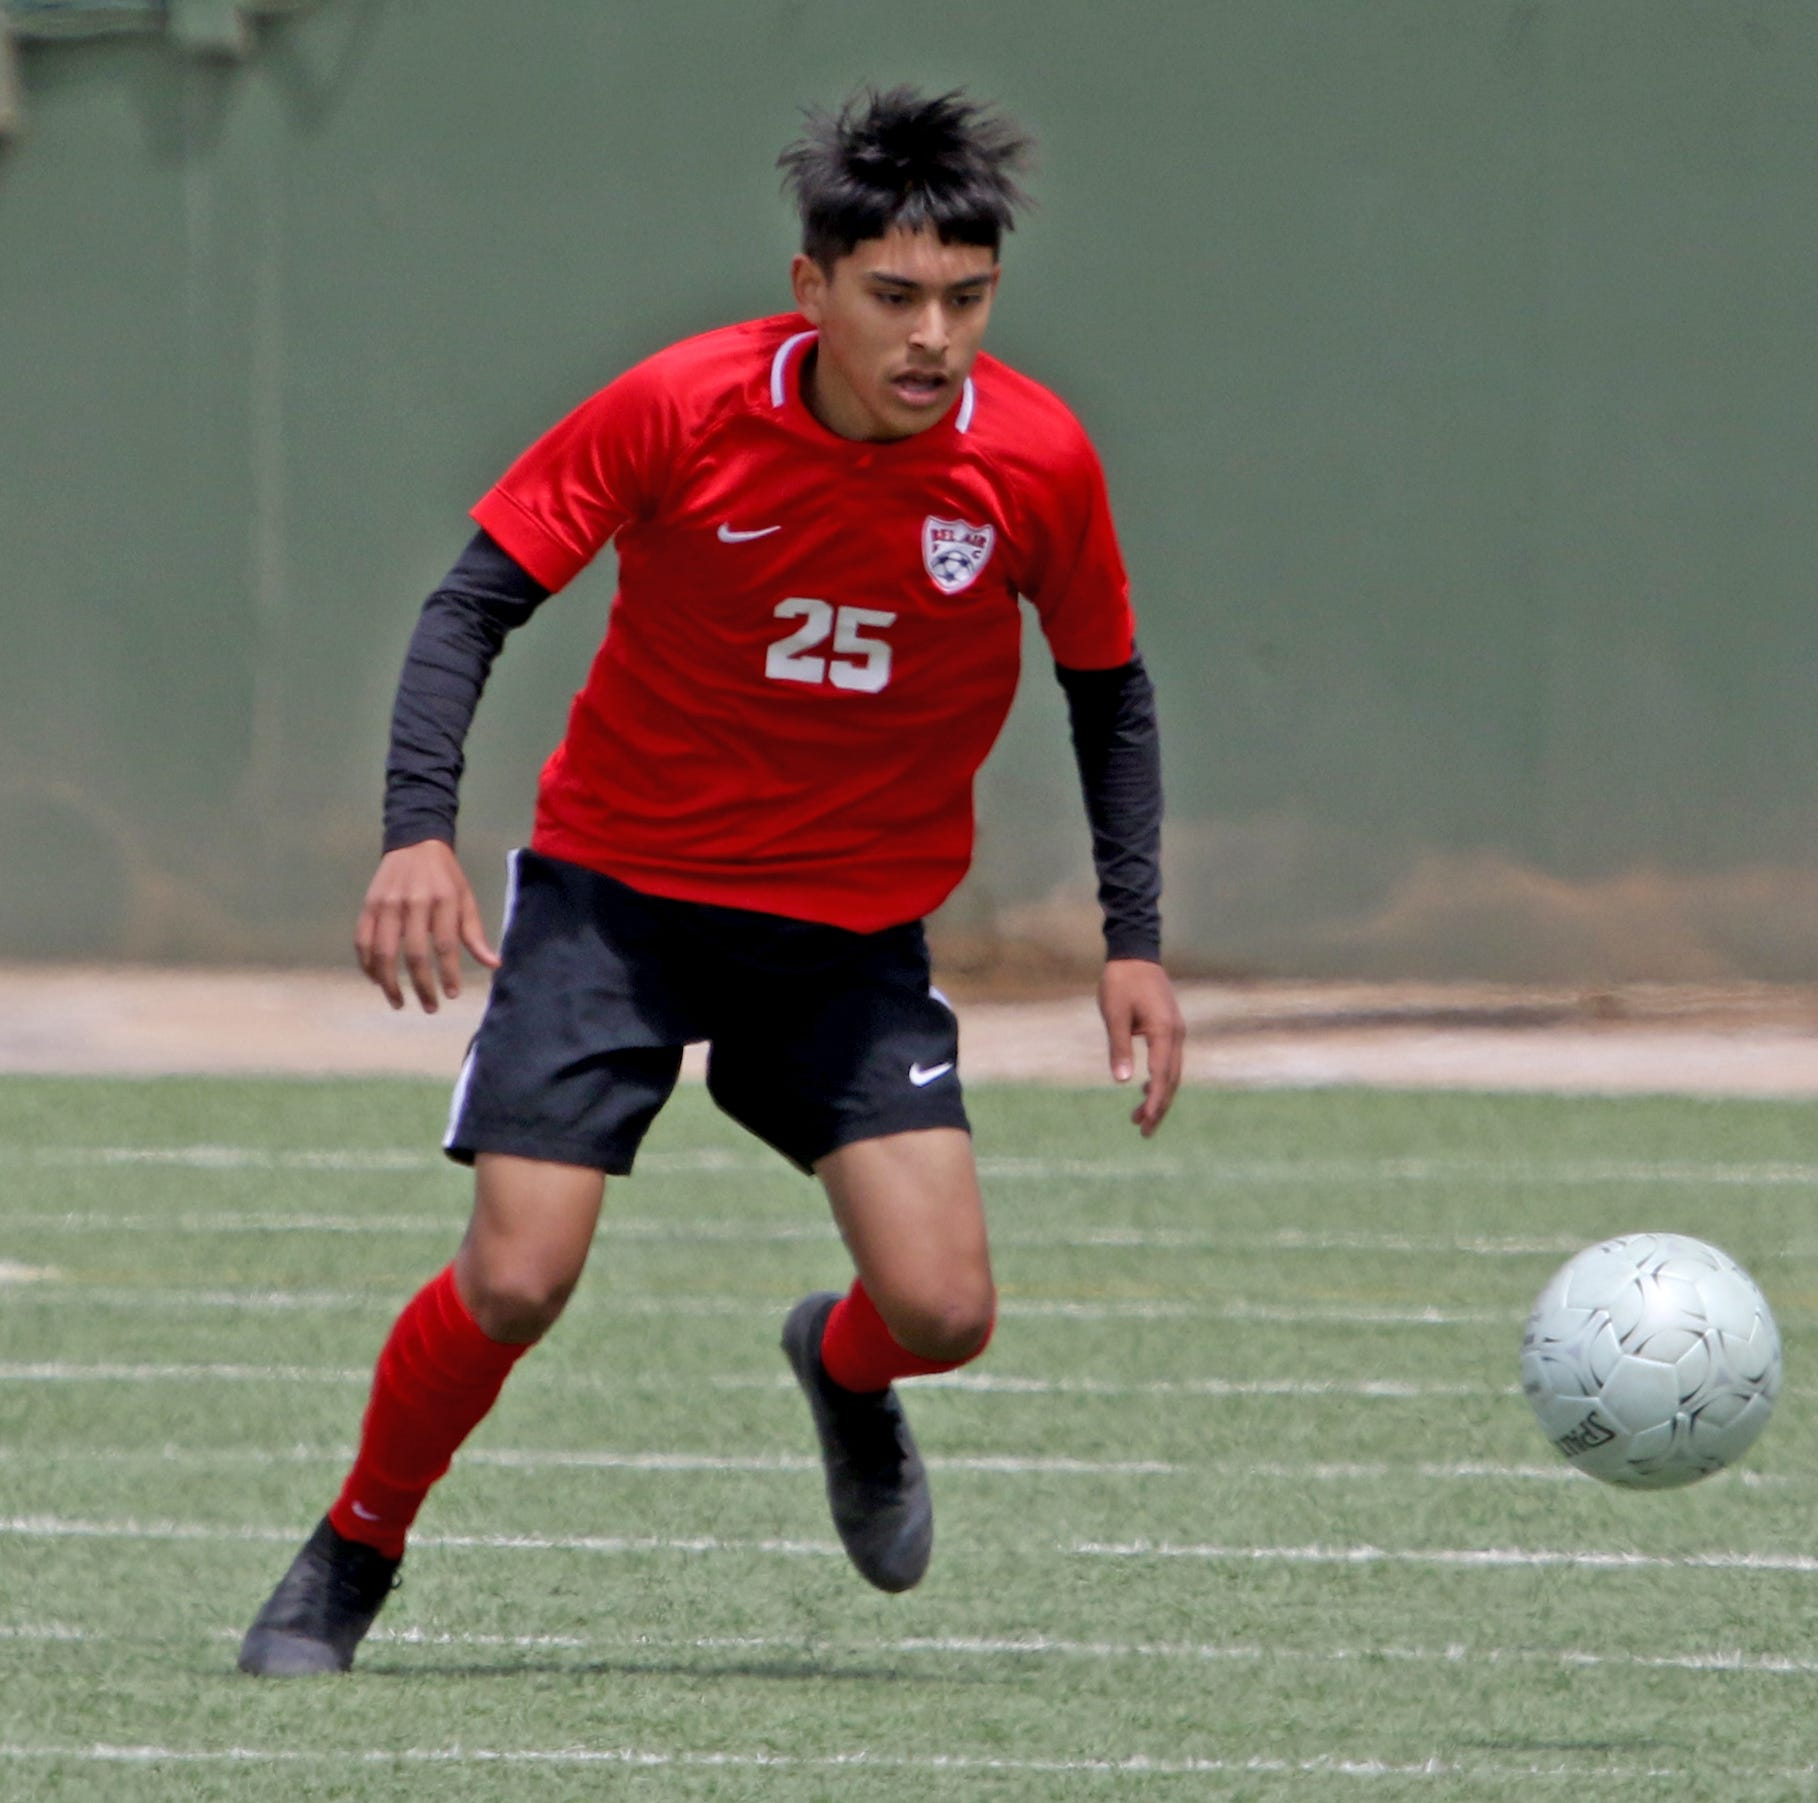 Bel Air's Cedric Carbajal moves to the ball in the Region I-5A Tournament against Burleson Friday, April 12, 2019, at Memorial Stadium in Wichita Falls.